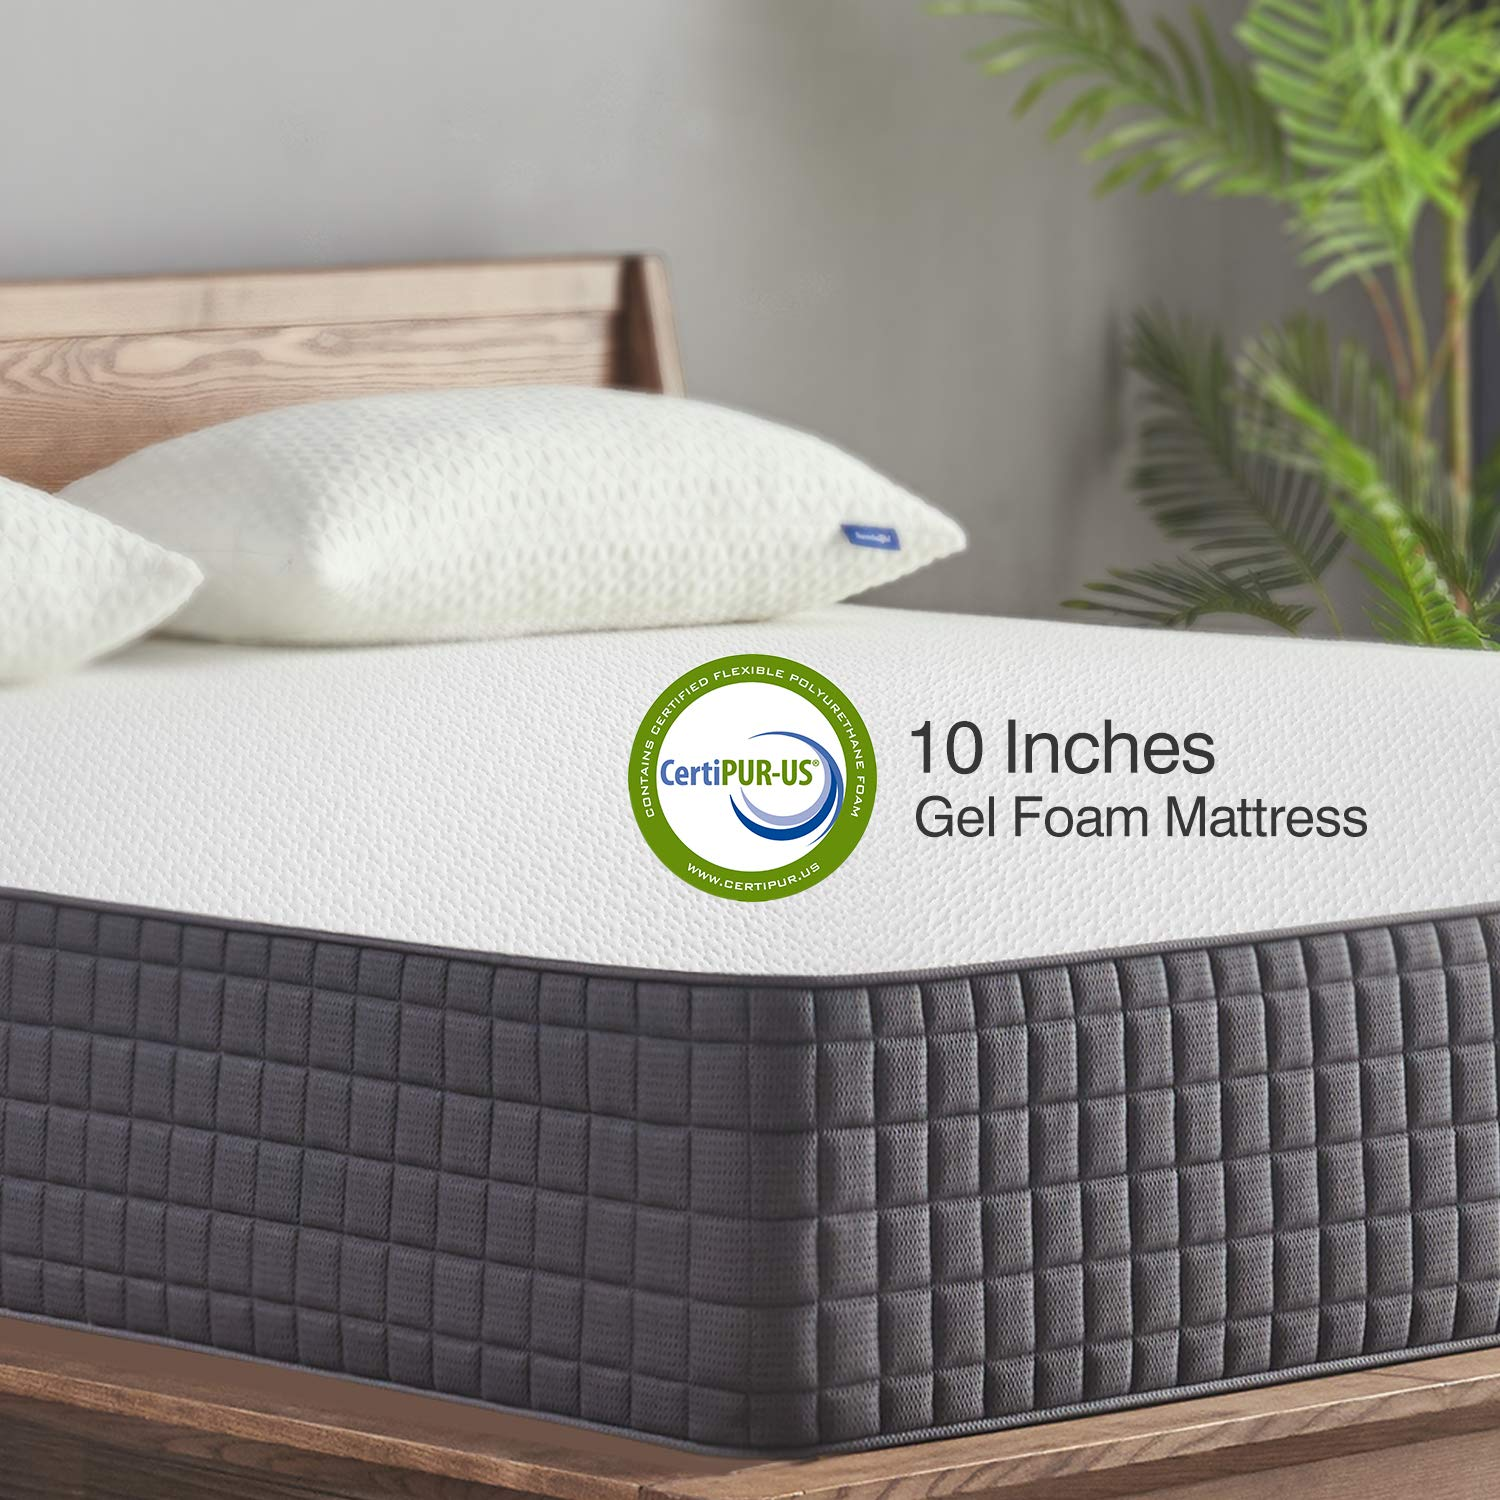 King Mattress, Sweetnight 10 Inch King Size Mattress-Infused Gel Memory Foam Mattress for Back Pain Relief & Cool Sleep, Medium Firm with CertiPUR-US Certified, 10 Years Warranty by Sweetnight